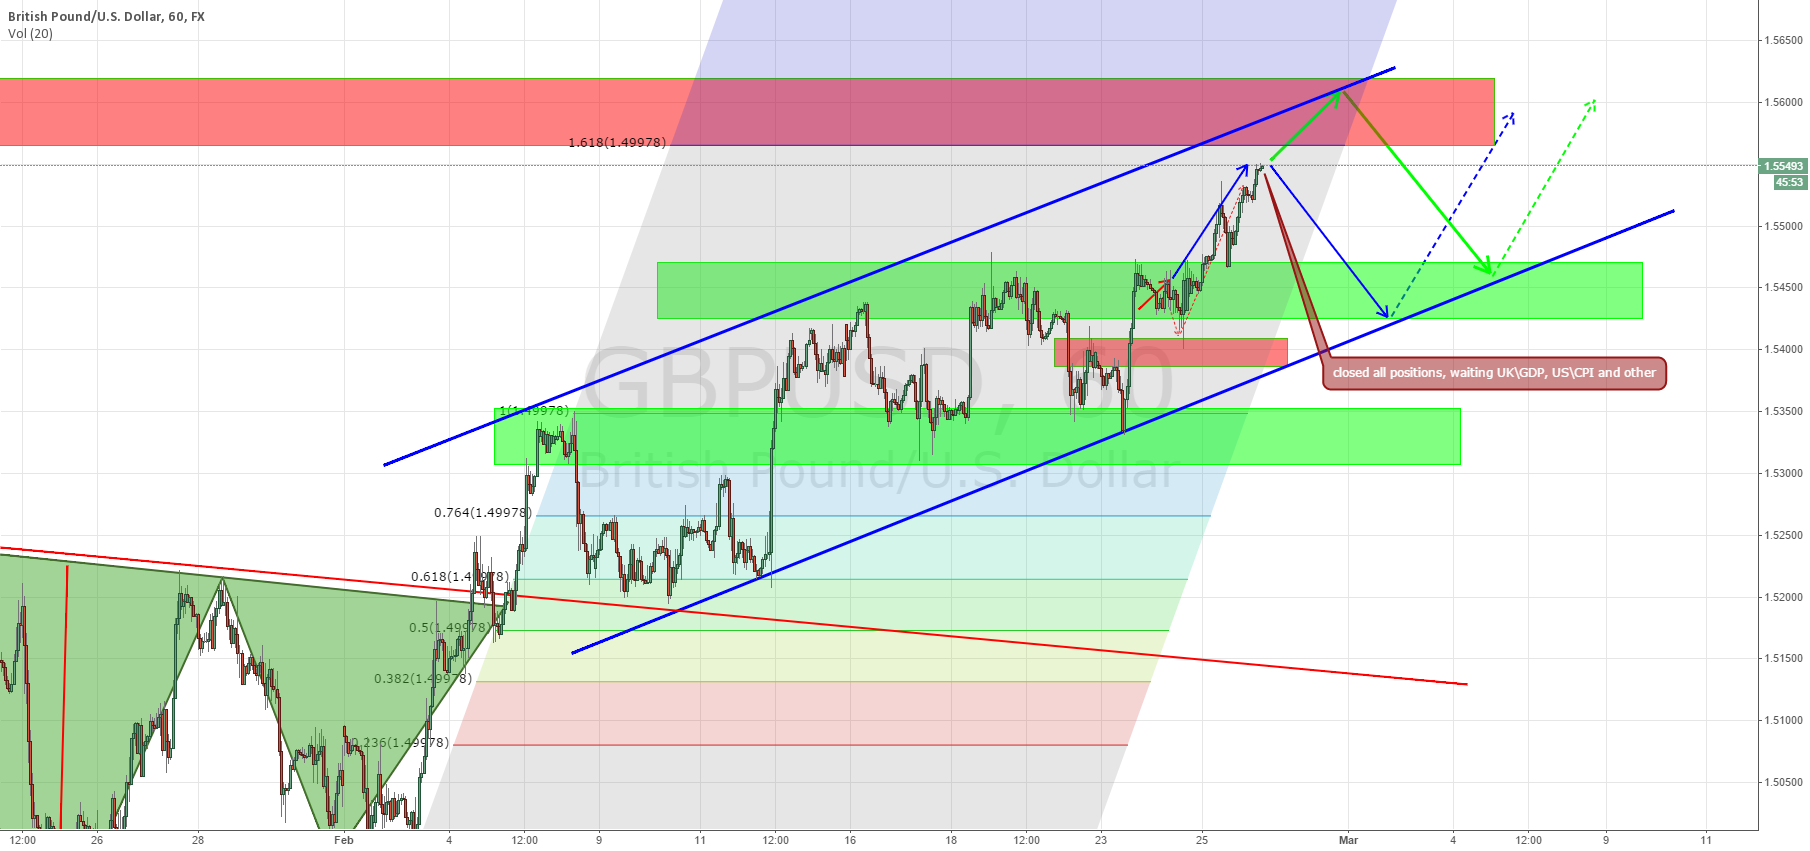 GBP/USD closed all positions, waiting UK\GDP, US\CPI and other